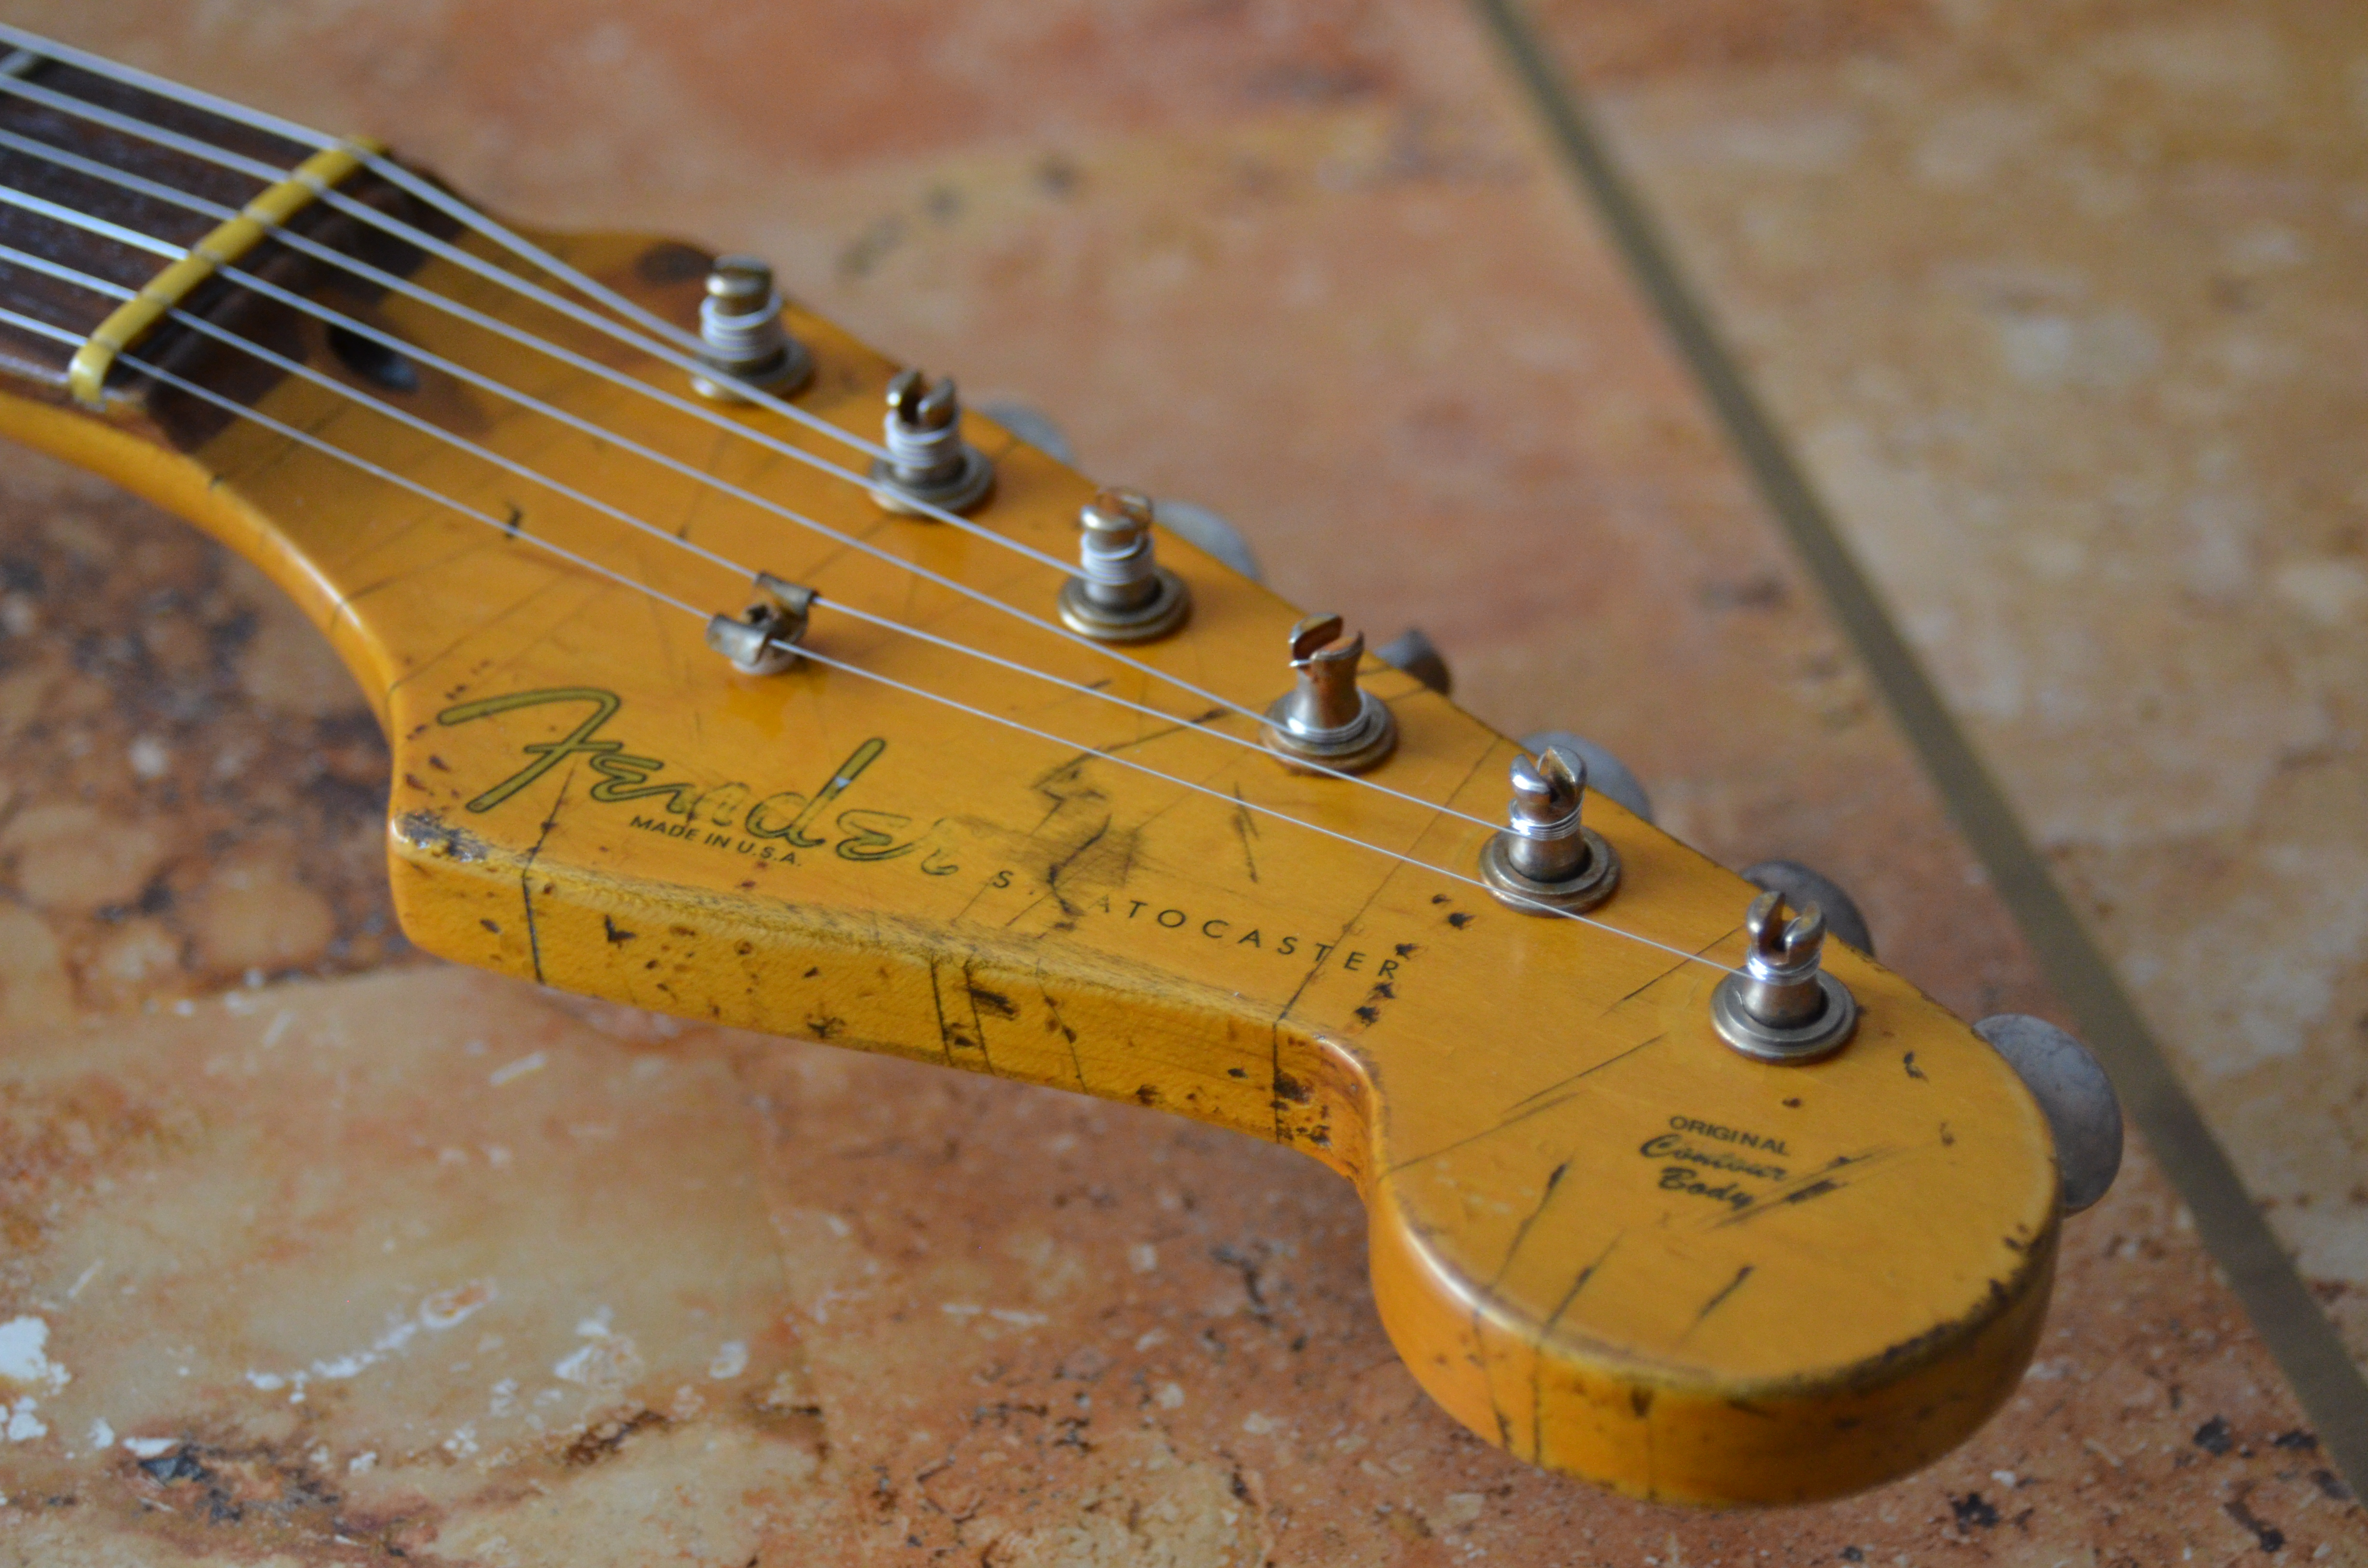 Fender Stratocaster Relic Headstock Pings Tuners Guitarwacky.com